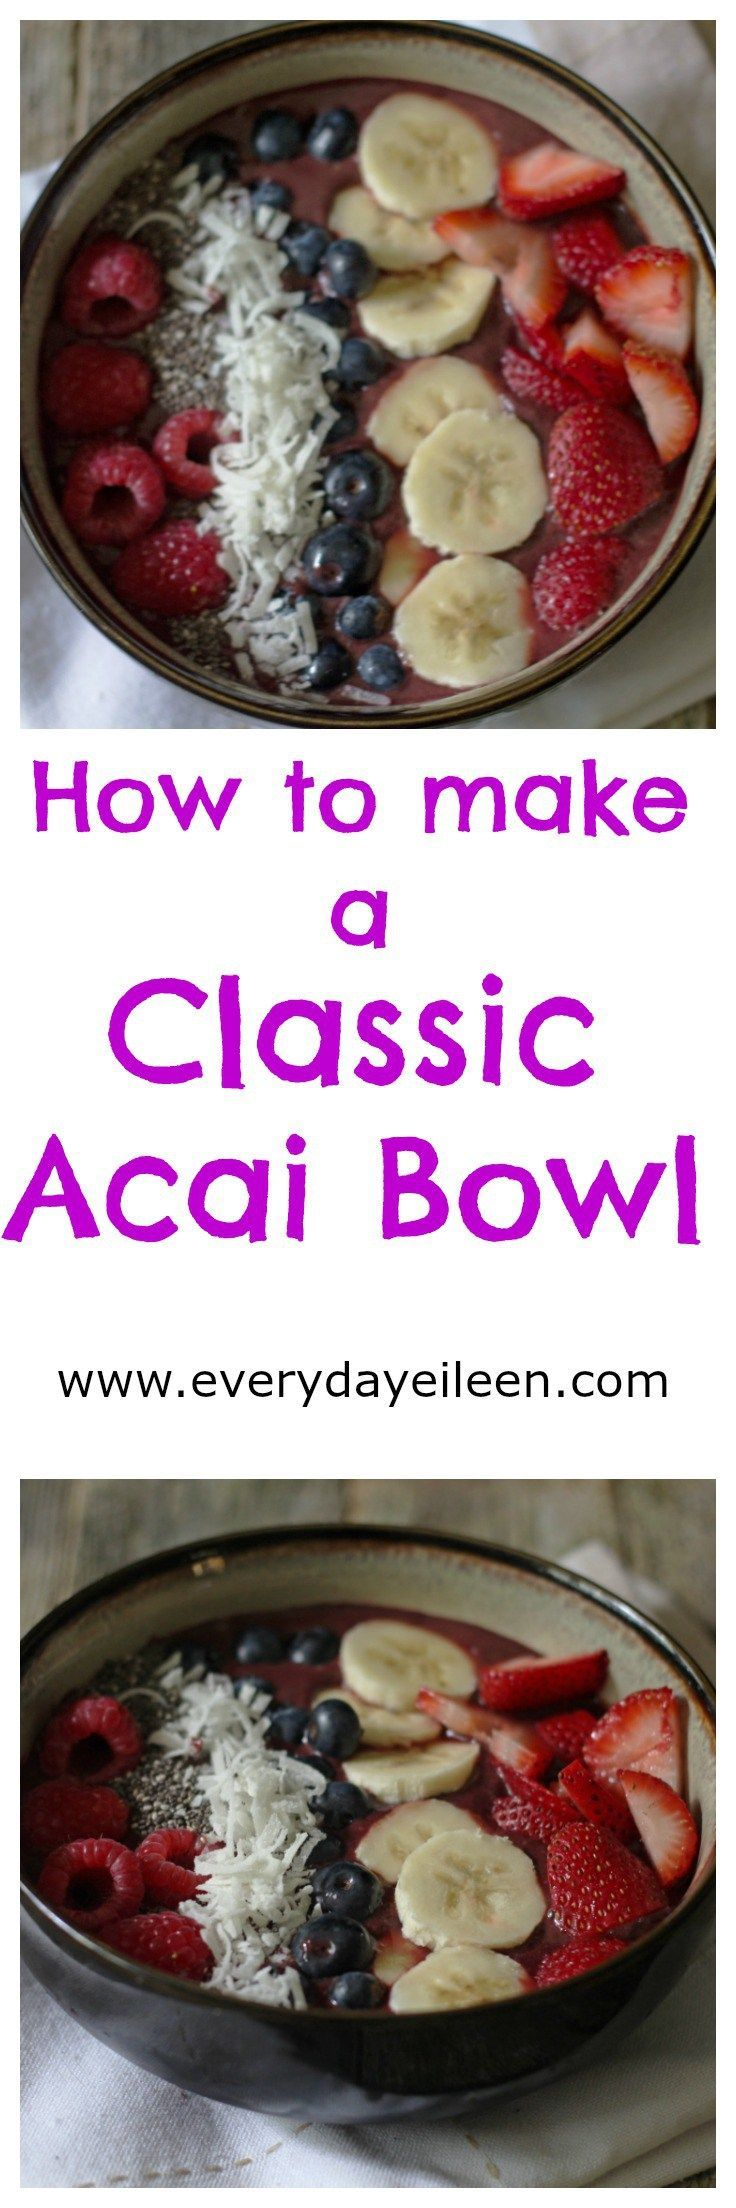 Make a classic Acai Bowl full of nutrients and antioxidants! Save money and control all ingredients by making your own. low-calorie, low-fat, low-carb, vegan